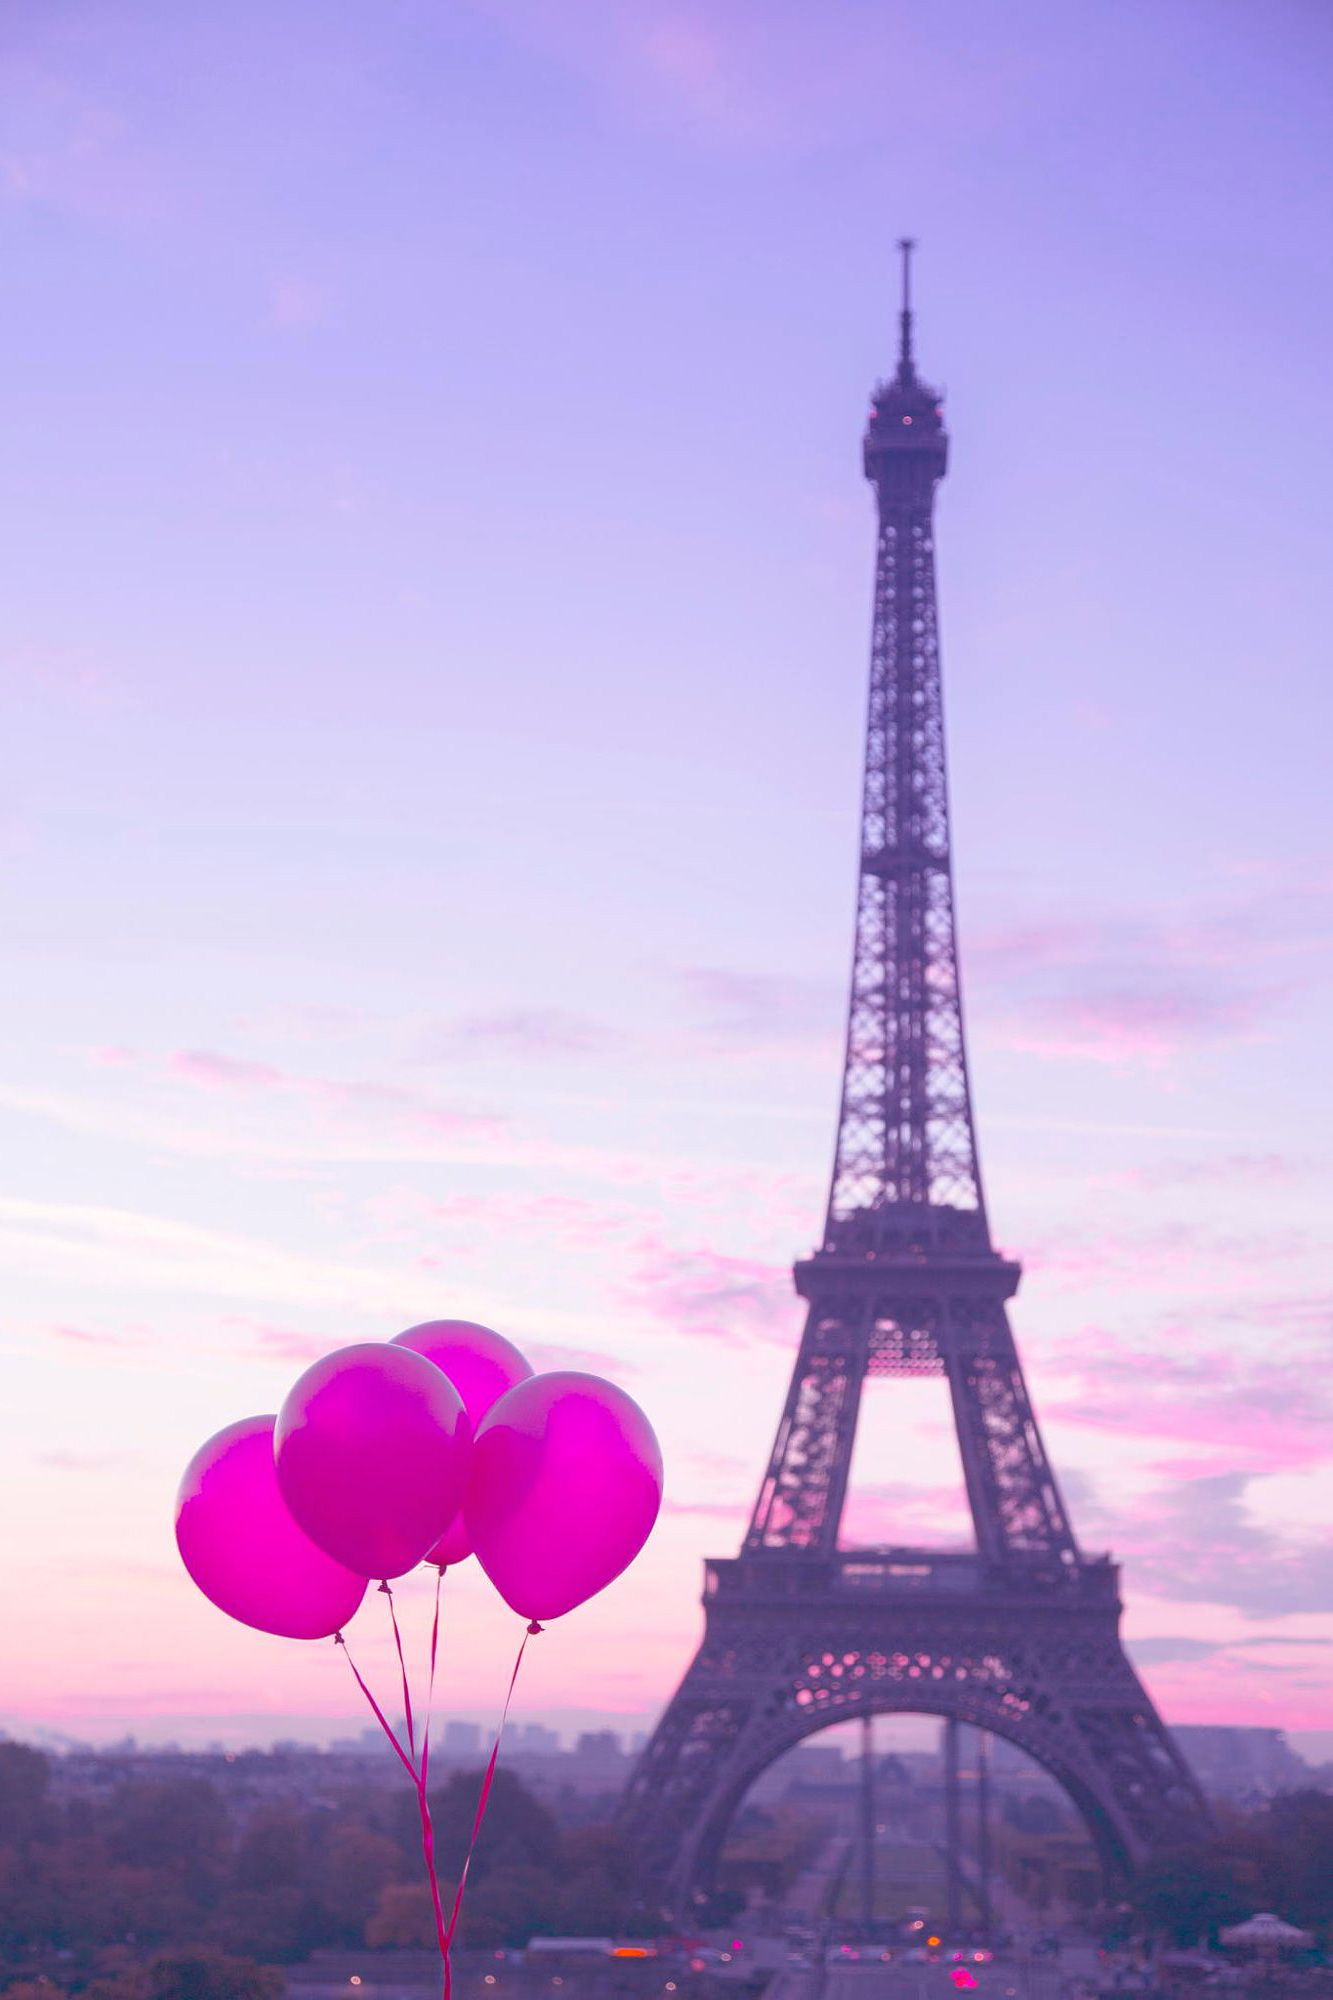 Pink Balloons In Paris Paris Wallpaper Paris Photography Eiffel Tower Paris Pictures